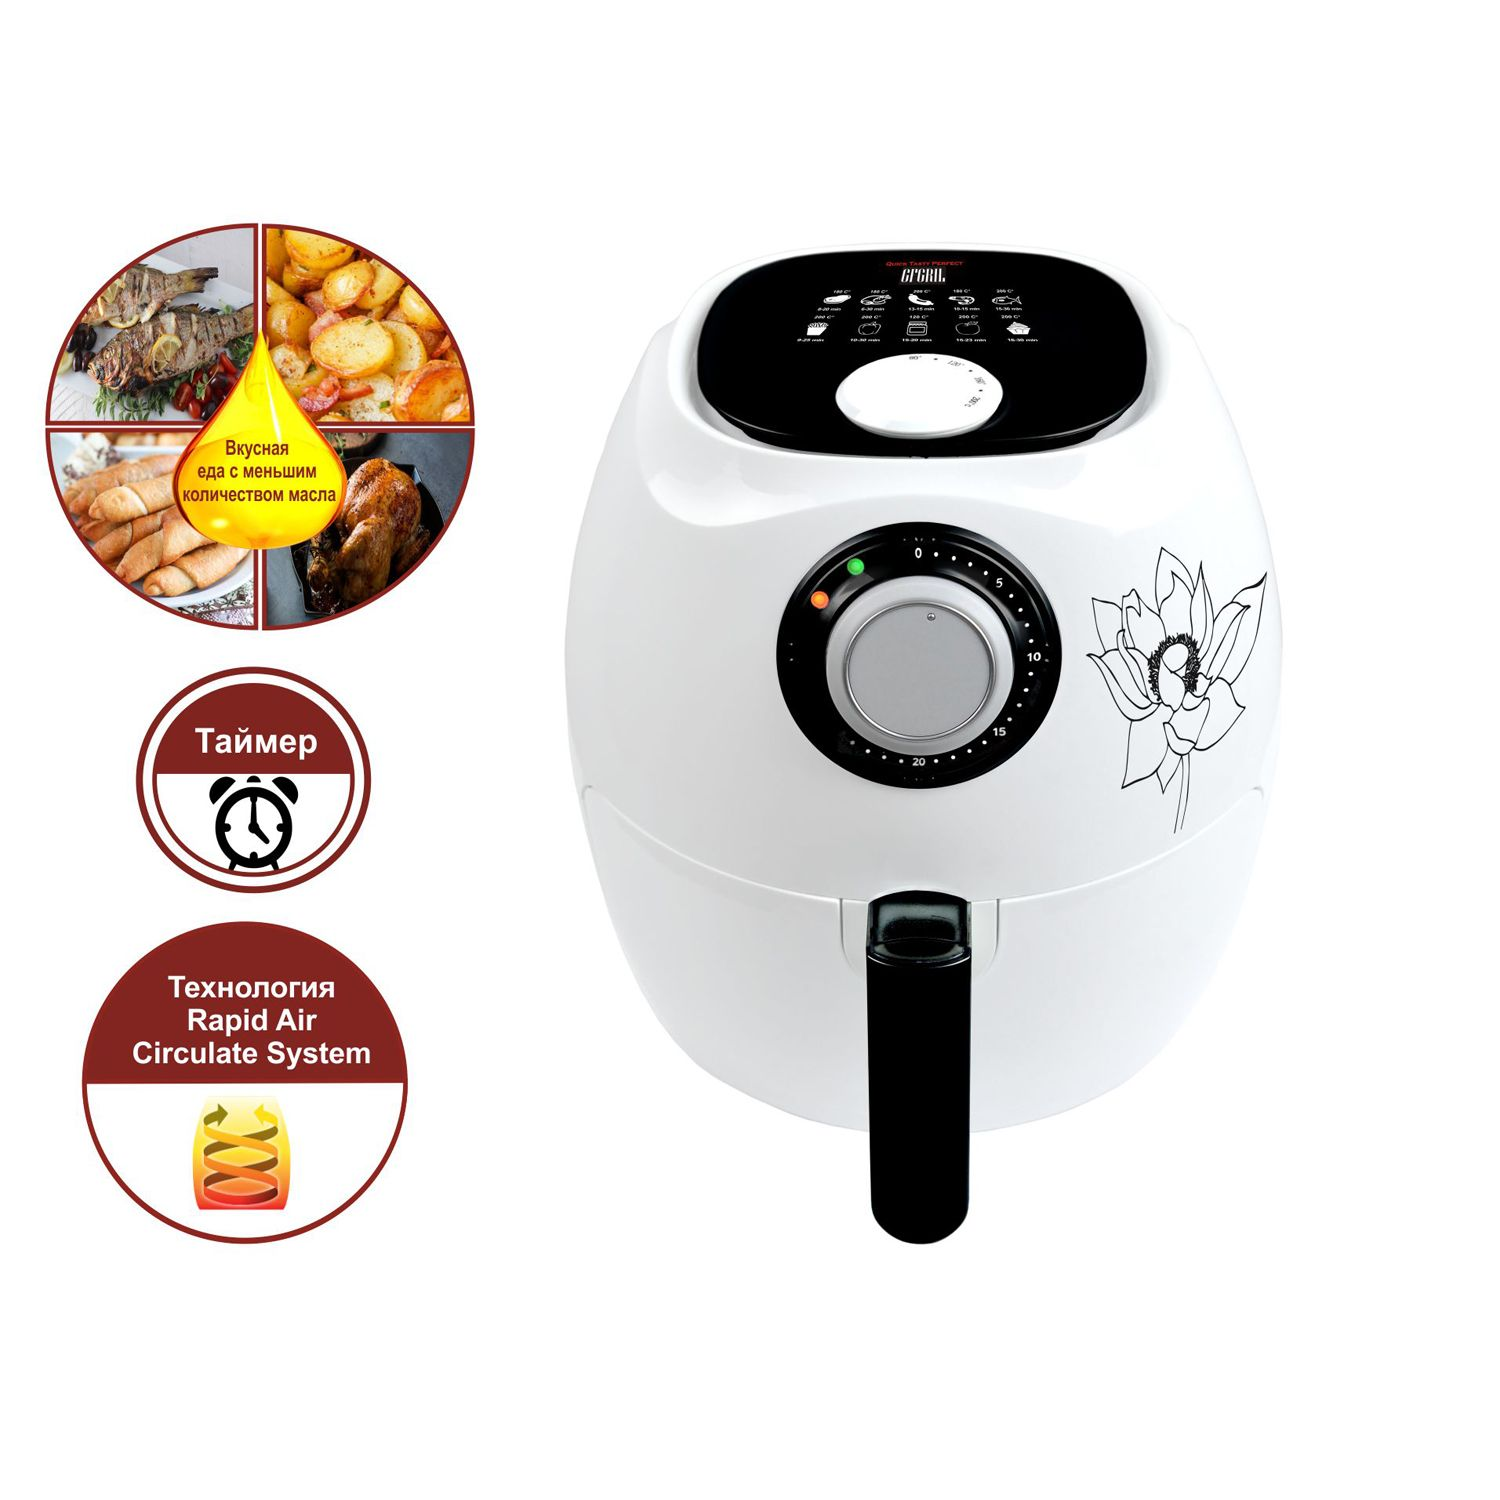 Аэрогриль GFA-2600 Air Fryer Compact